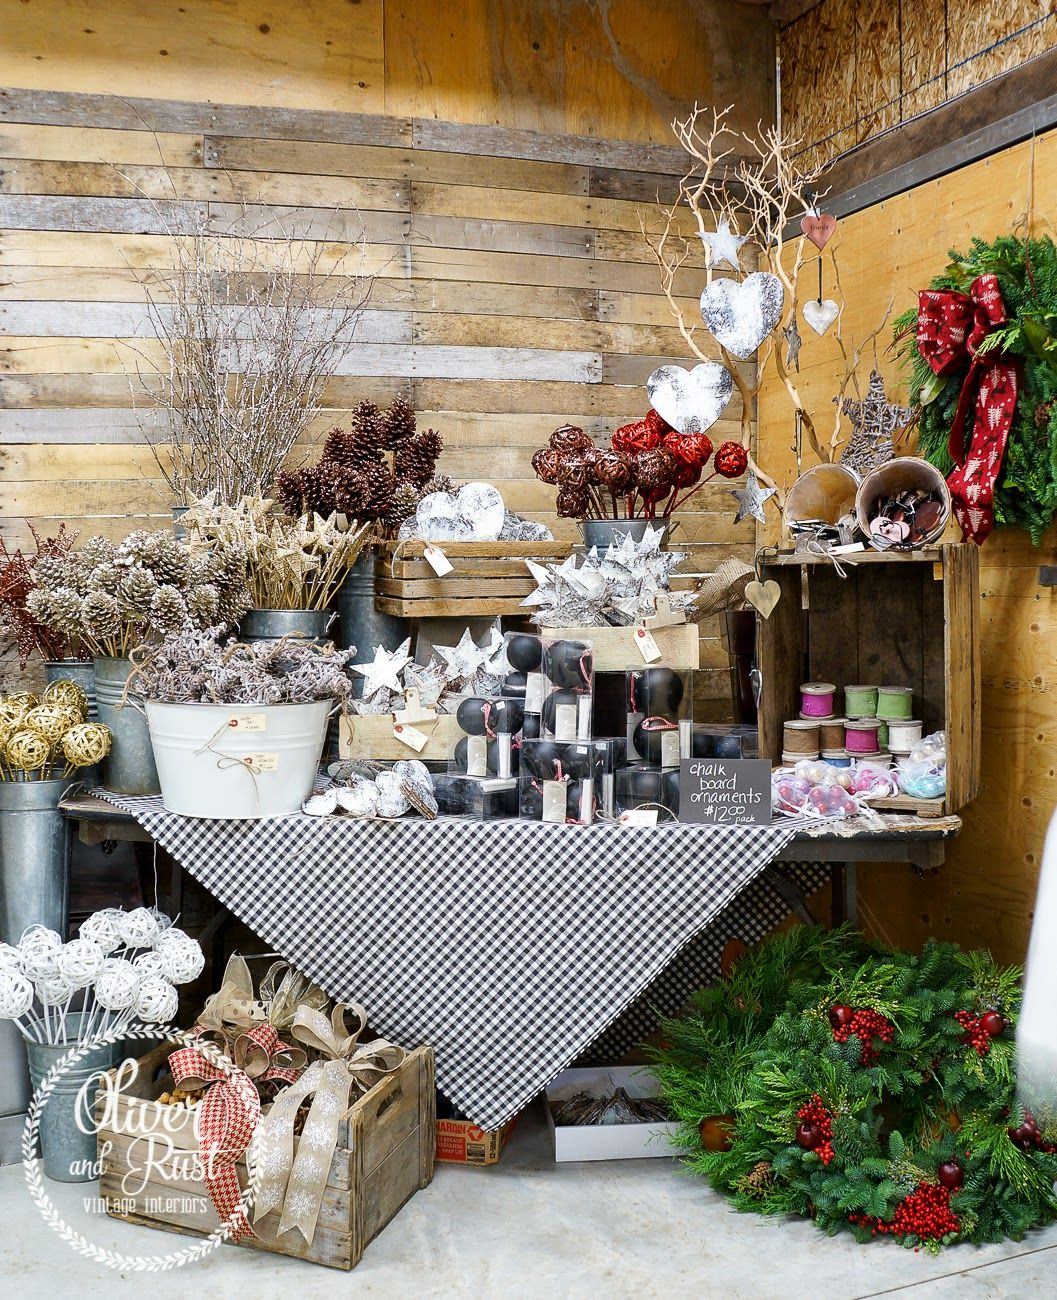 Oliver And Rust Christmas Market Part 1 Christmas Shop Displays Christmas Display Christmas Market Stall